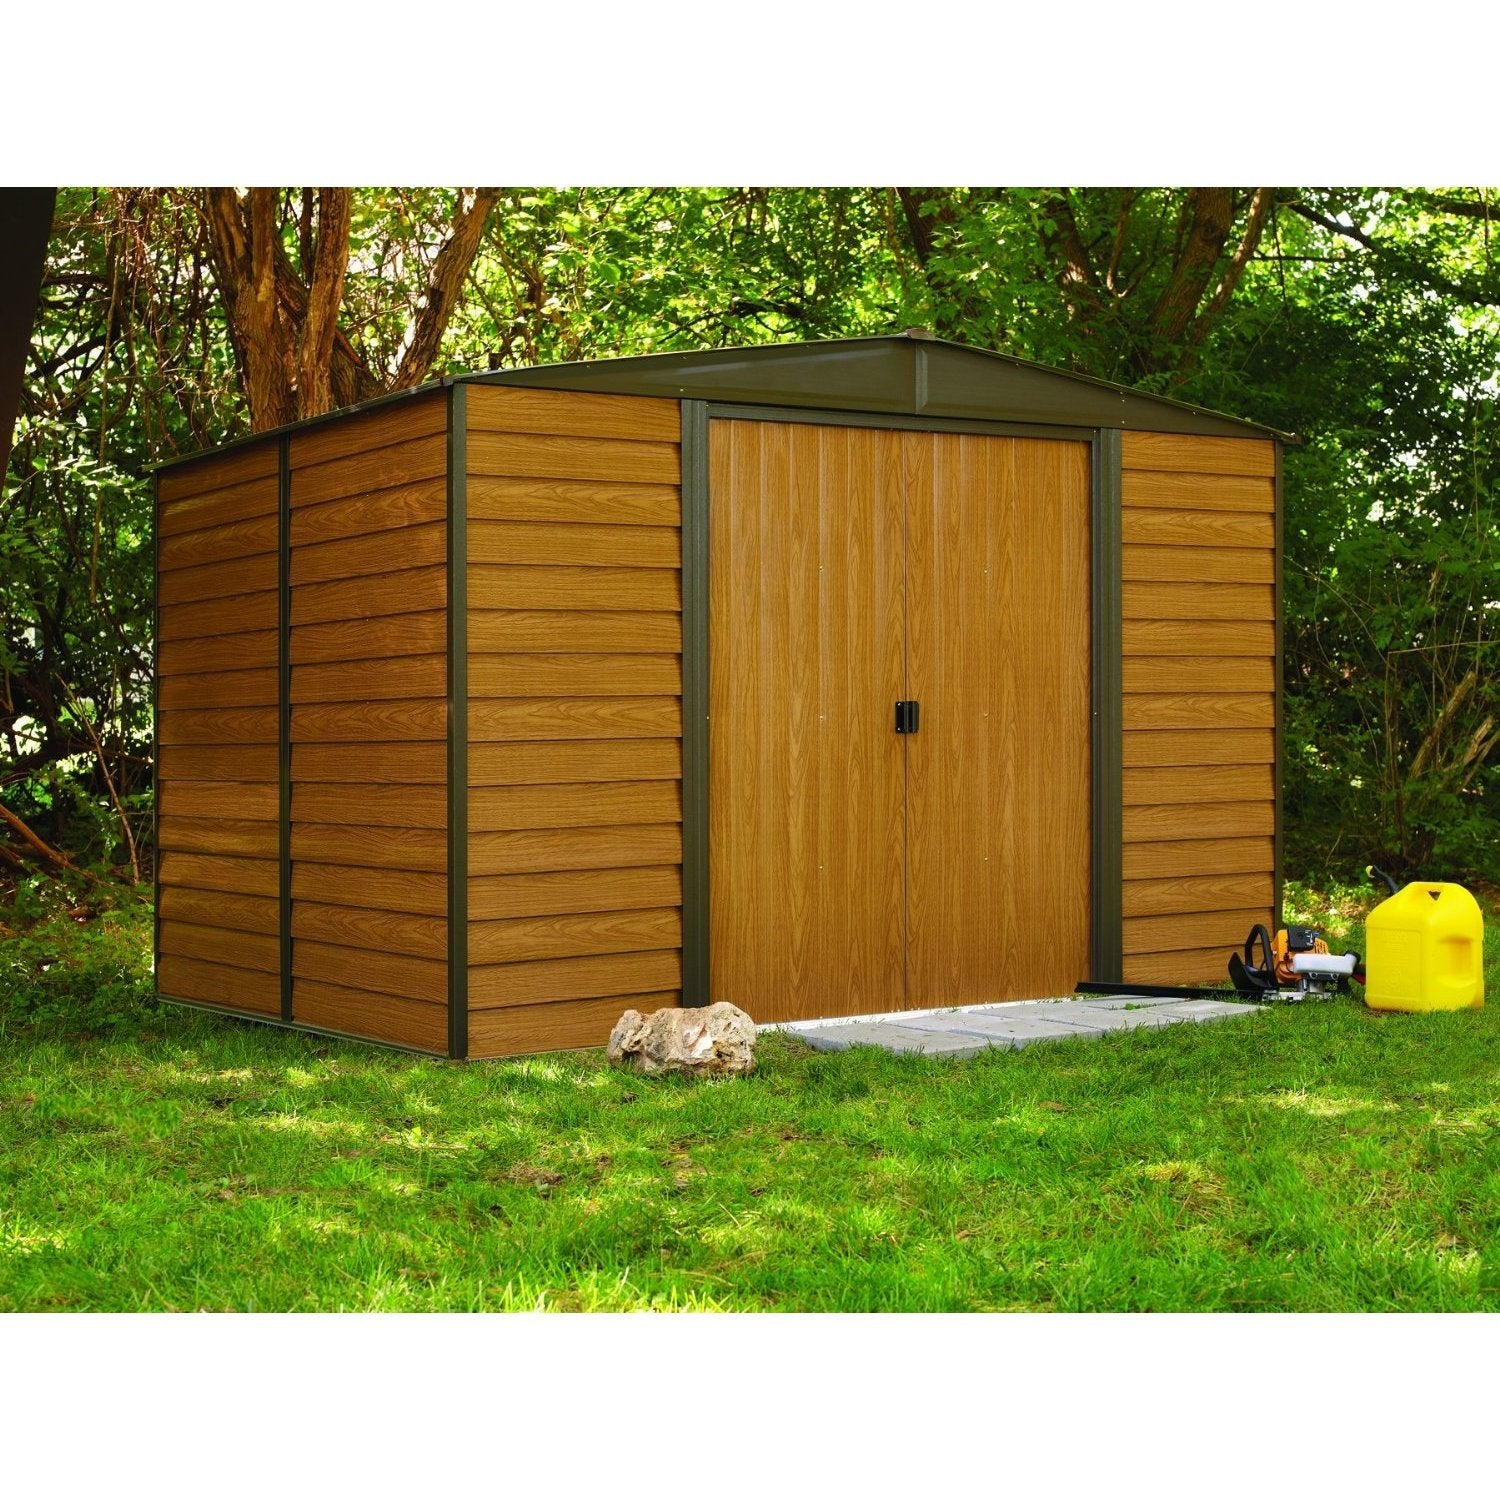 10 X 6 Ft. Steel Storage Shed Coffee/Woodgrain Brown